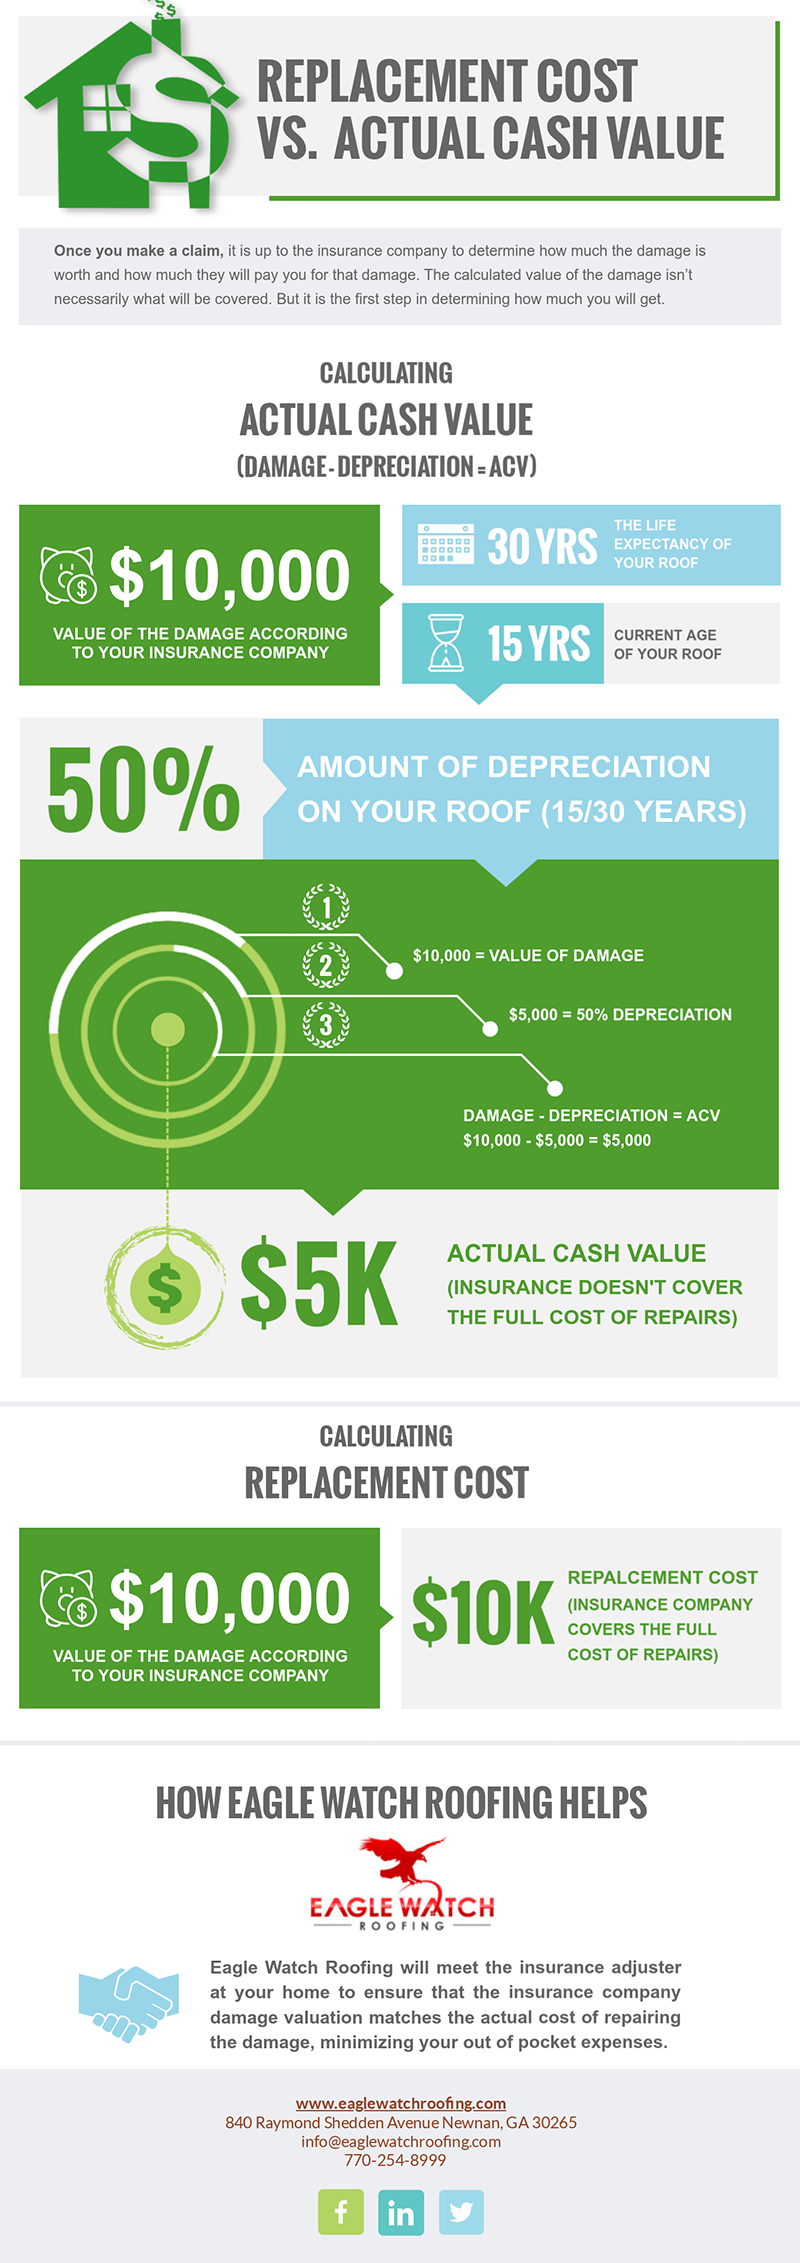 Replacement Cost vs. Actual Cash Value [infographic]